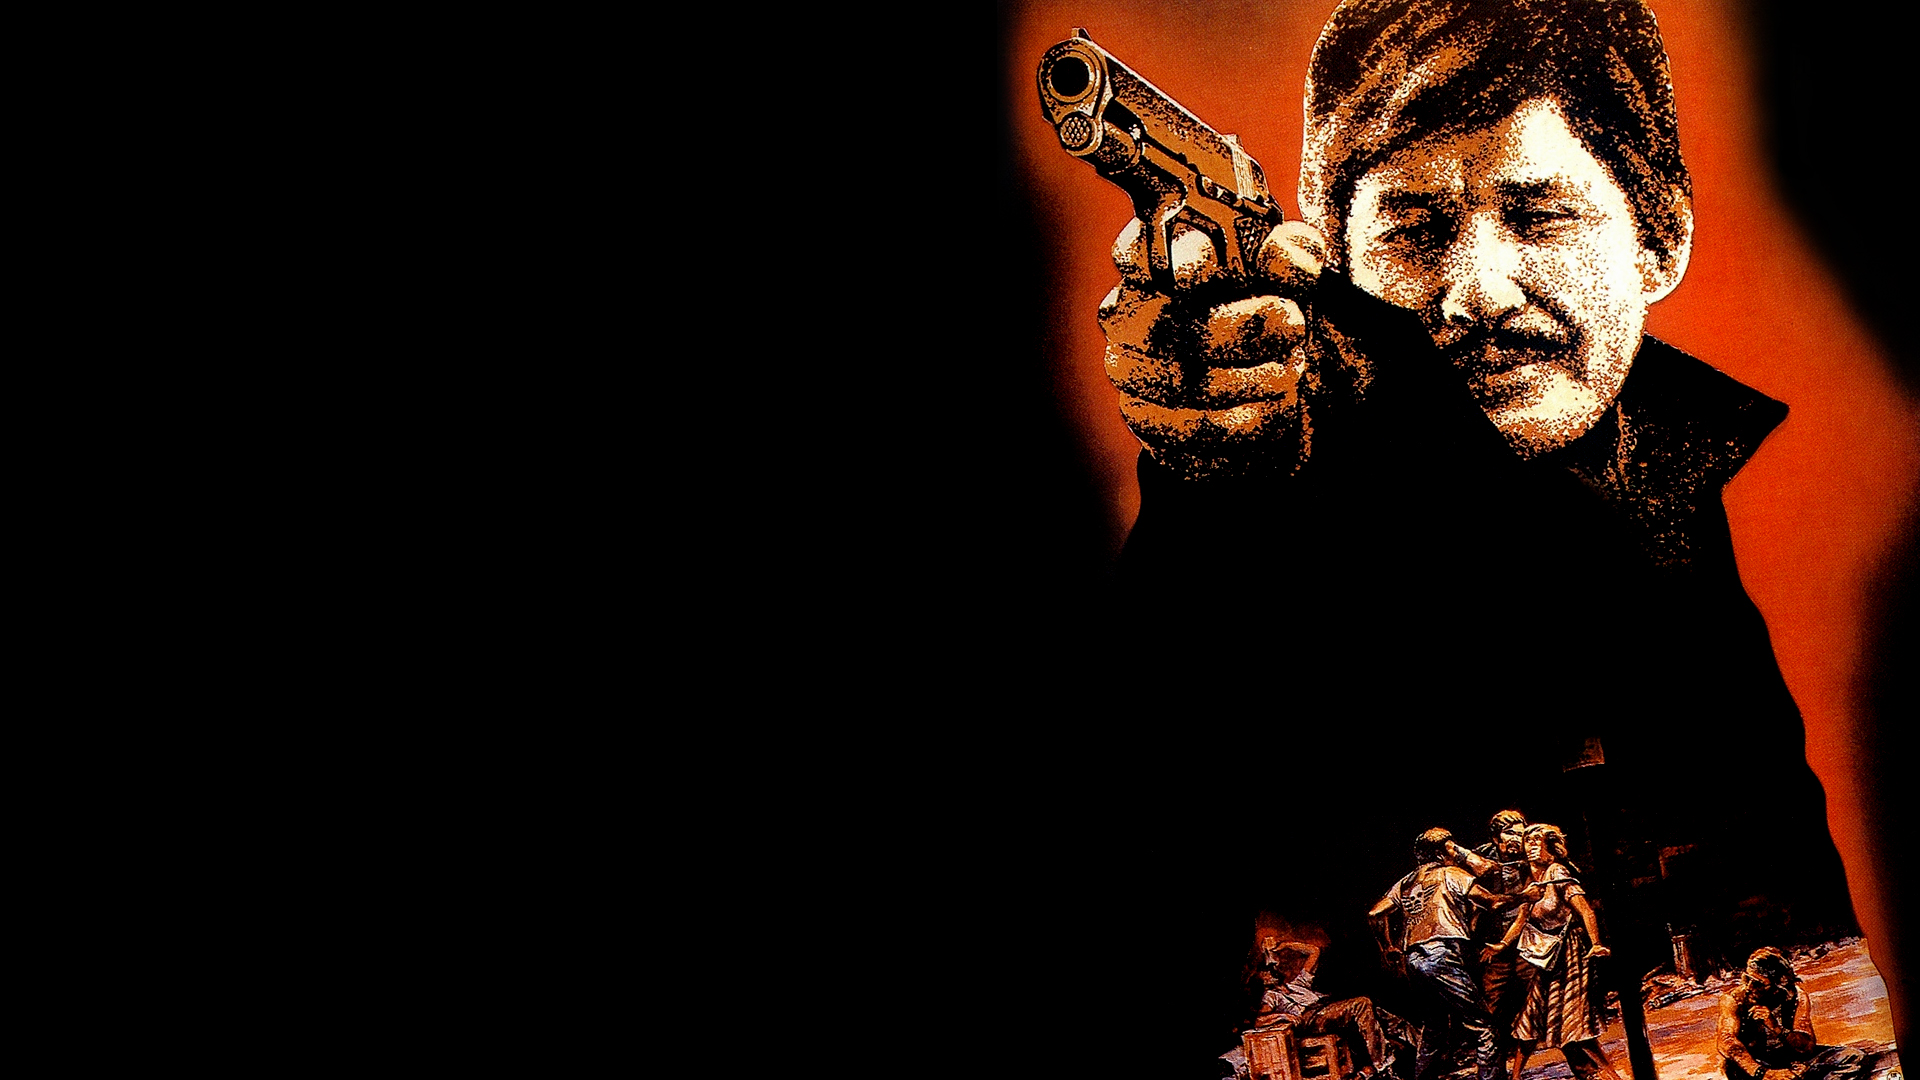 Death Wish 2 Full HD Wallpaper and Background Image ...